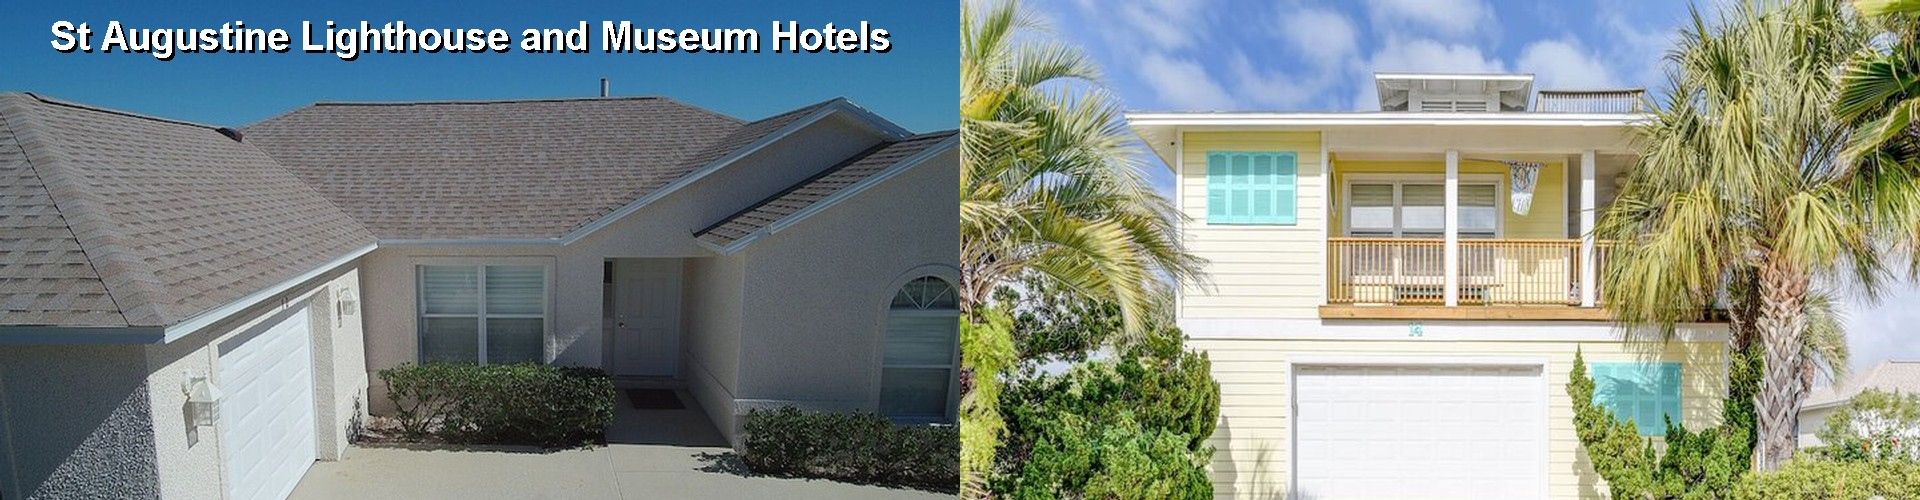 5 Best Hotels near St Augustine Lighthouse and Museum